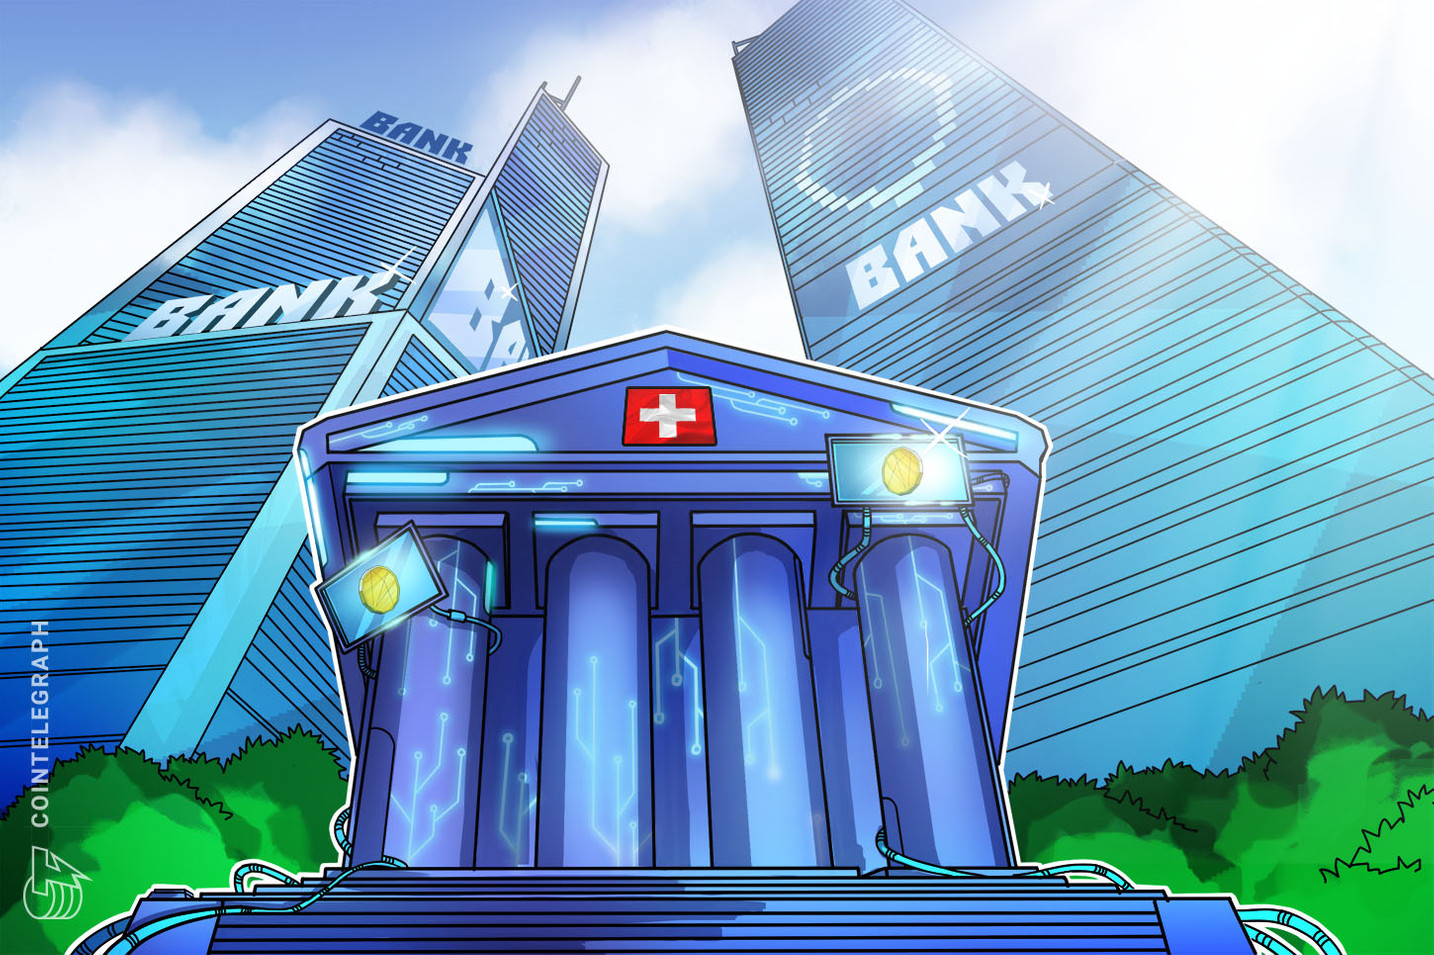 Arab Bank Switzerland Opens Bitcoin Custody, Brokerage Services